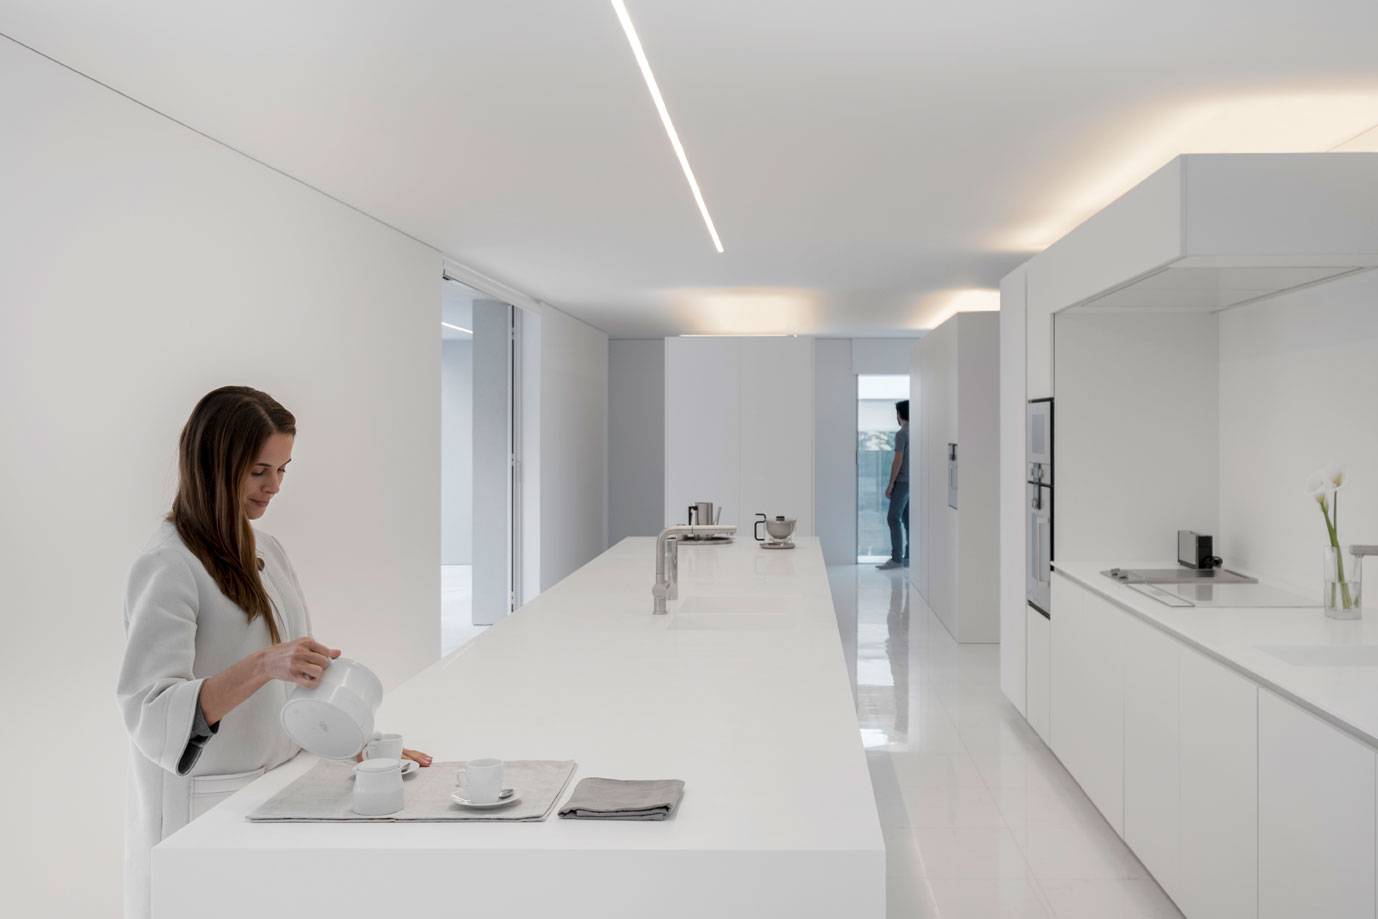 dissenycv-es-fran-silvestre-arquitectos_-house-betwwen-the-pine-forest_-24